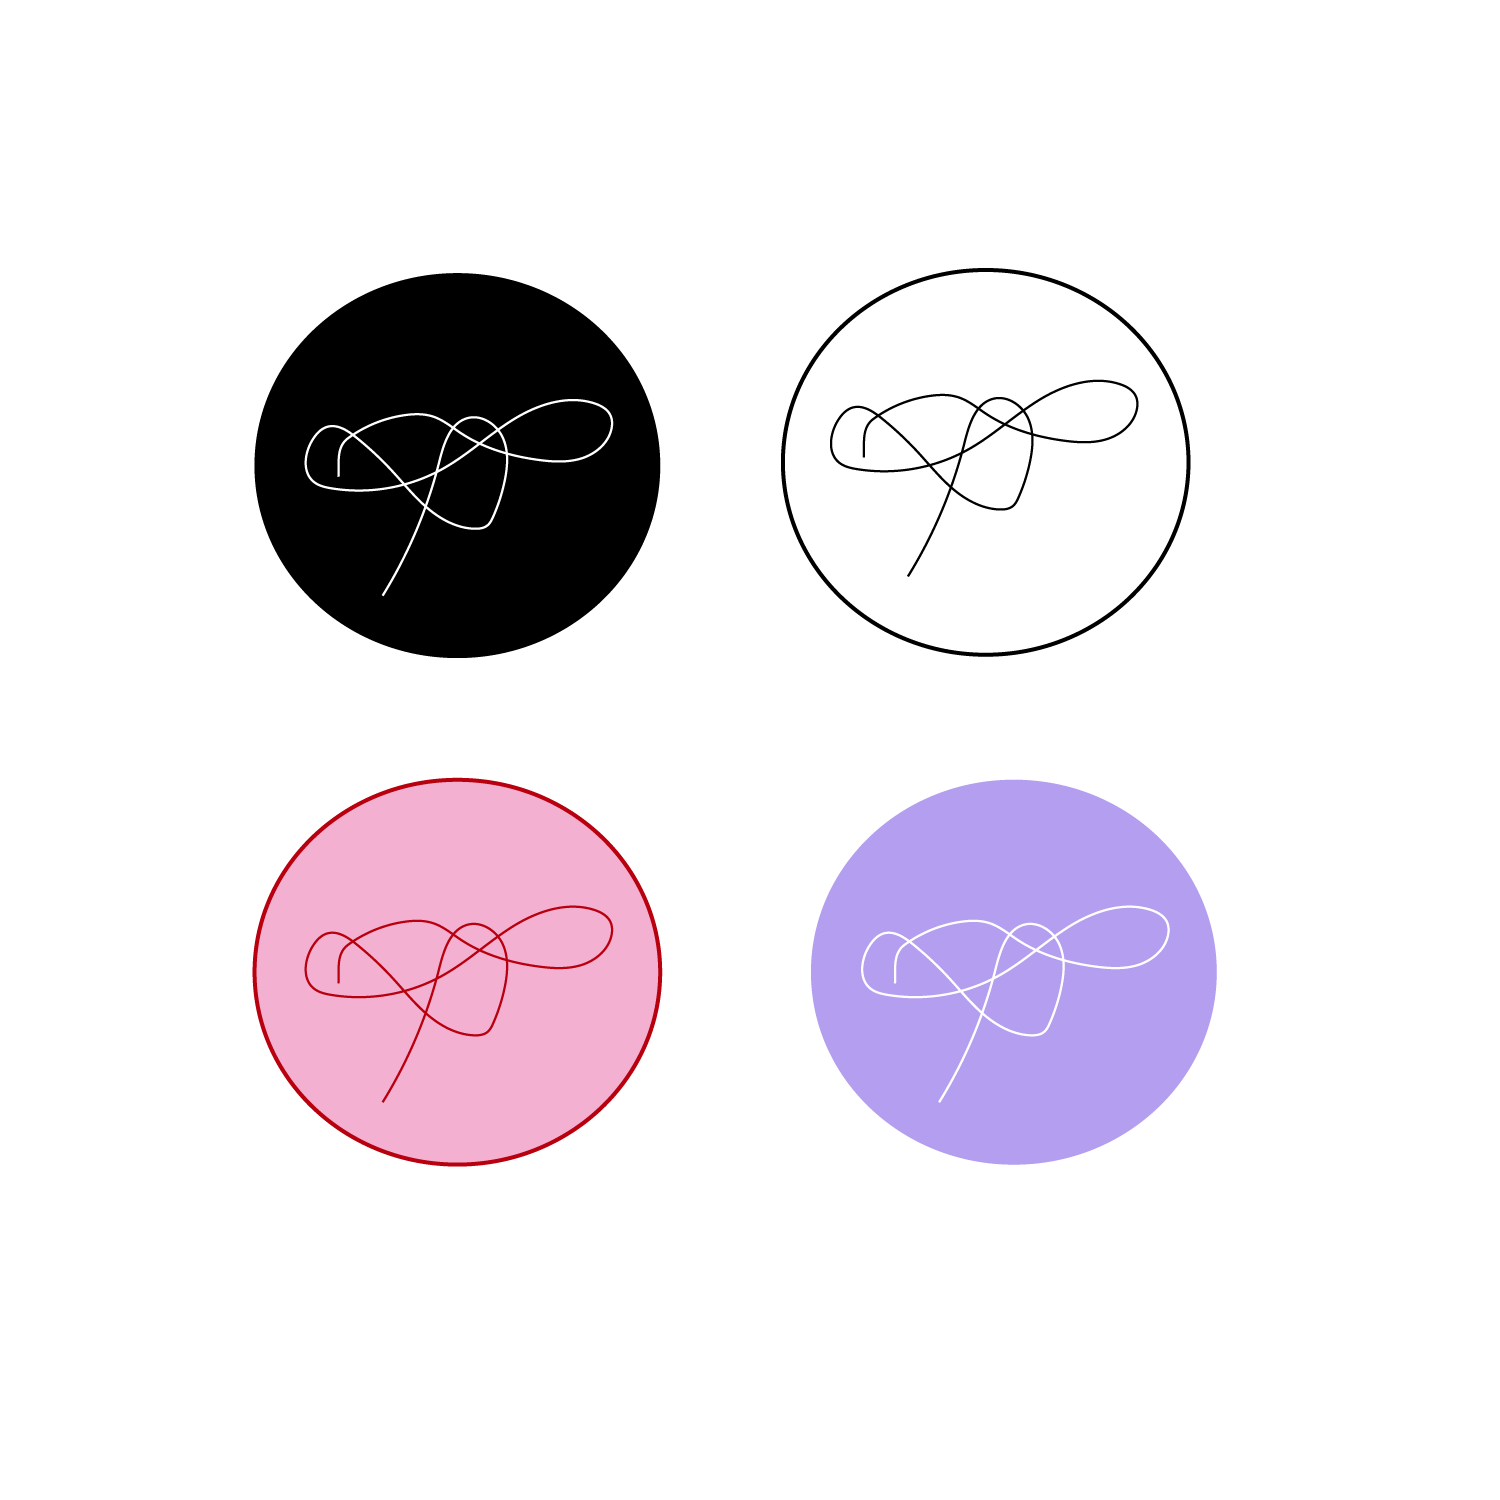 squiggle_logo-01.png